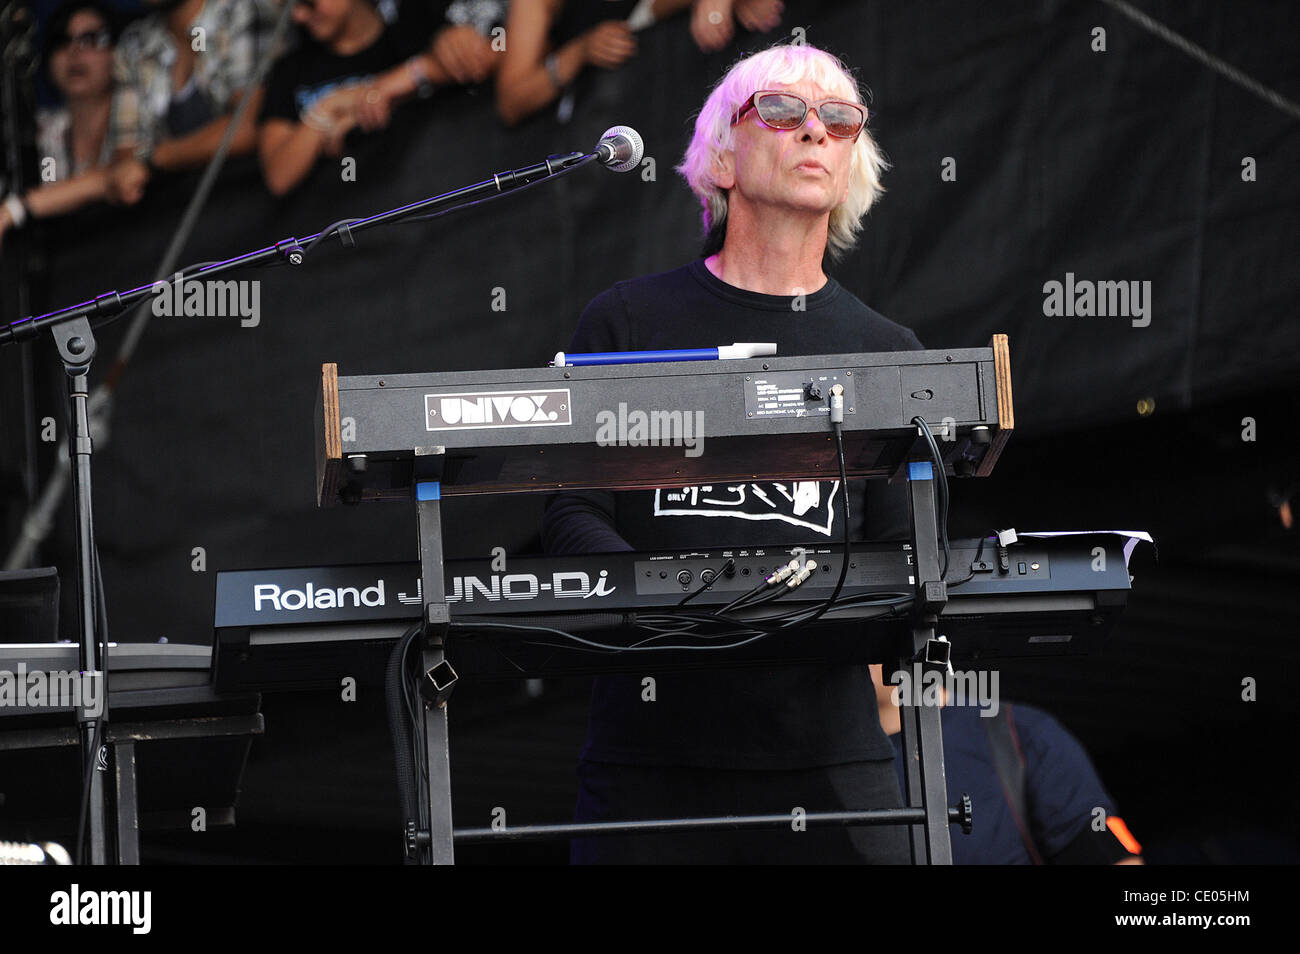 Aug 7, 2011 - Chicago, Illinois; USA - Keyboardist GREG HAWKES of The Cars performs live as part of the 20th Anniversary - Stock Image